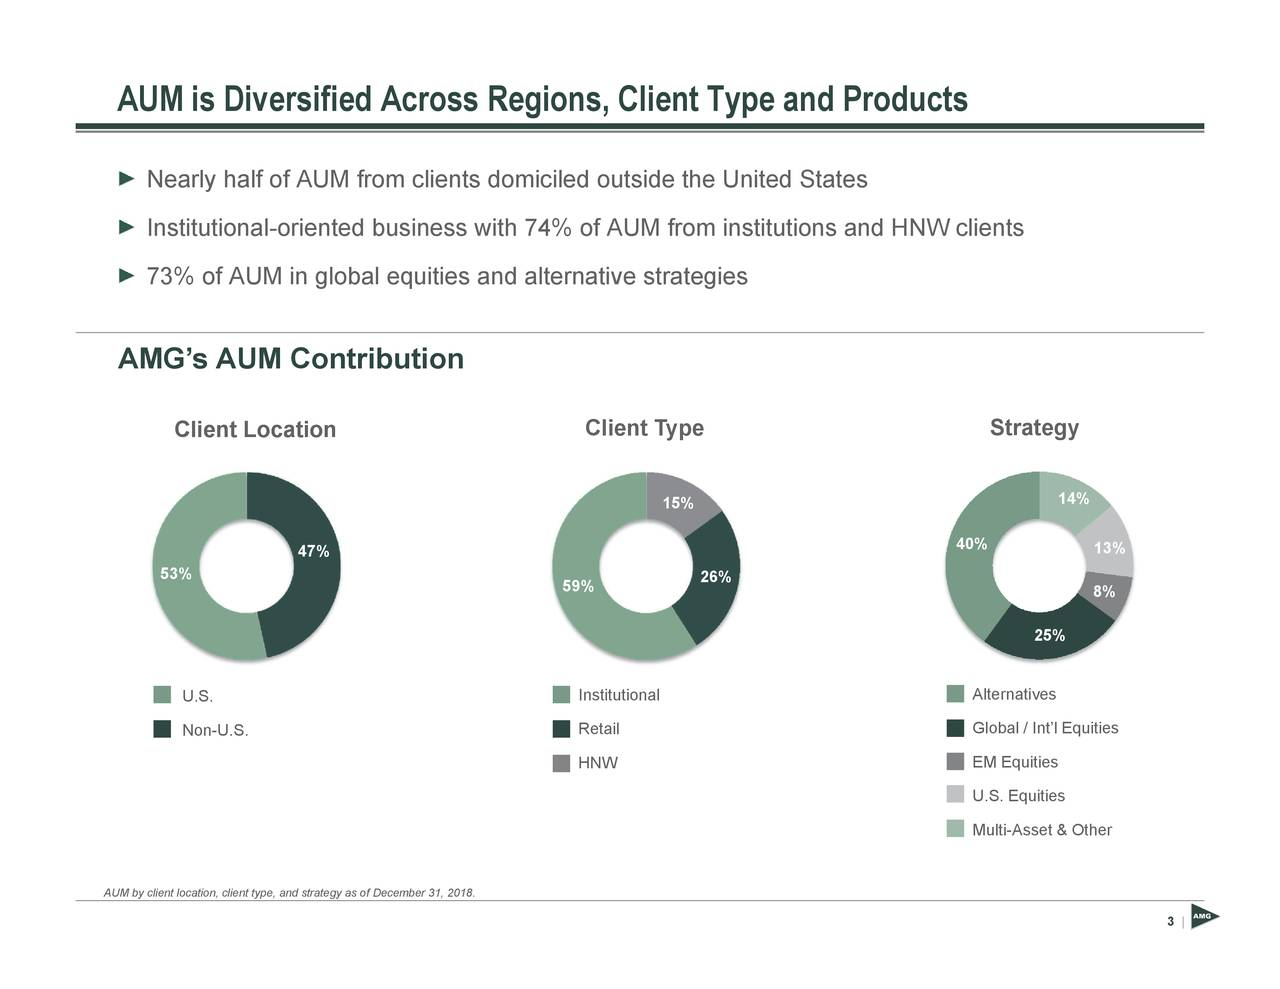 3 13% 8% 14% 25% Strategy AlteGltval/UtSiEuliesset & Other 40% 26% 15% AUM from institutions and HNW clients Client Type 59% InsuttnllNW s domiciled outside the United States December 31, 2018. 47% and strategy as of Client Location U.S.Non-U.S. 53% NearIlyshttltofnaf-oMifnoindcblenitleqsuitts a4nd aoltfernative strategies AUM is Diversified Across Regions, Client Type and Products AUM by client location, client type,